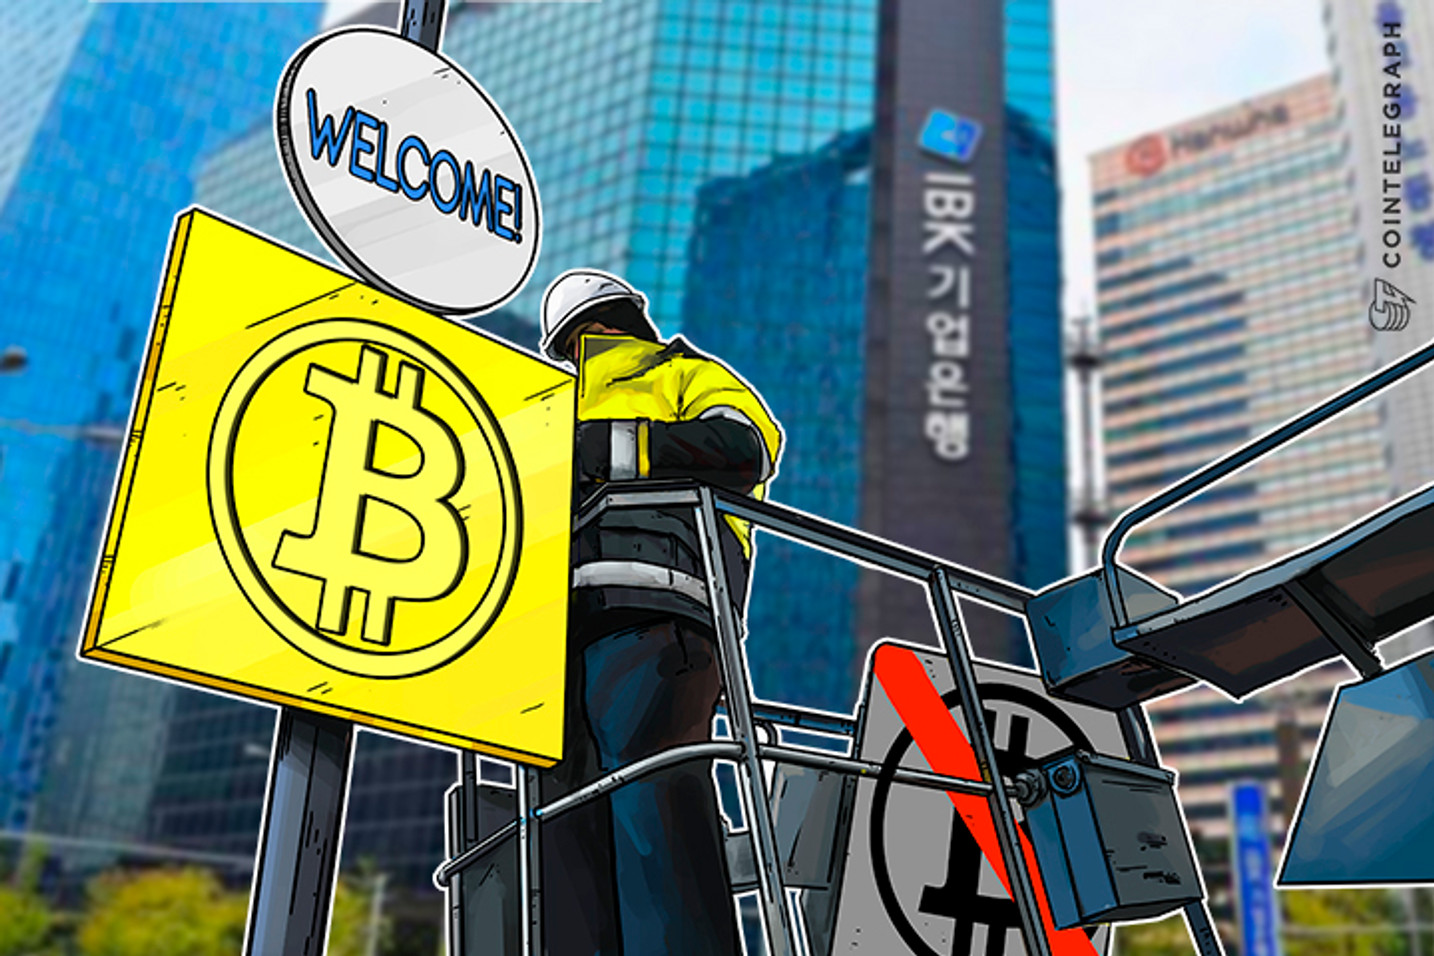 OFFICIAL: No Cryptocurrency Trading Ban in South Korea, Government Says